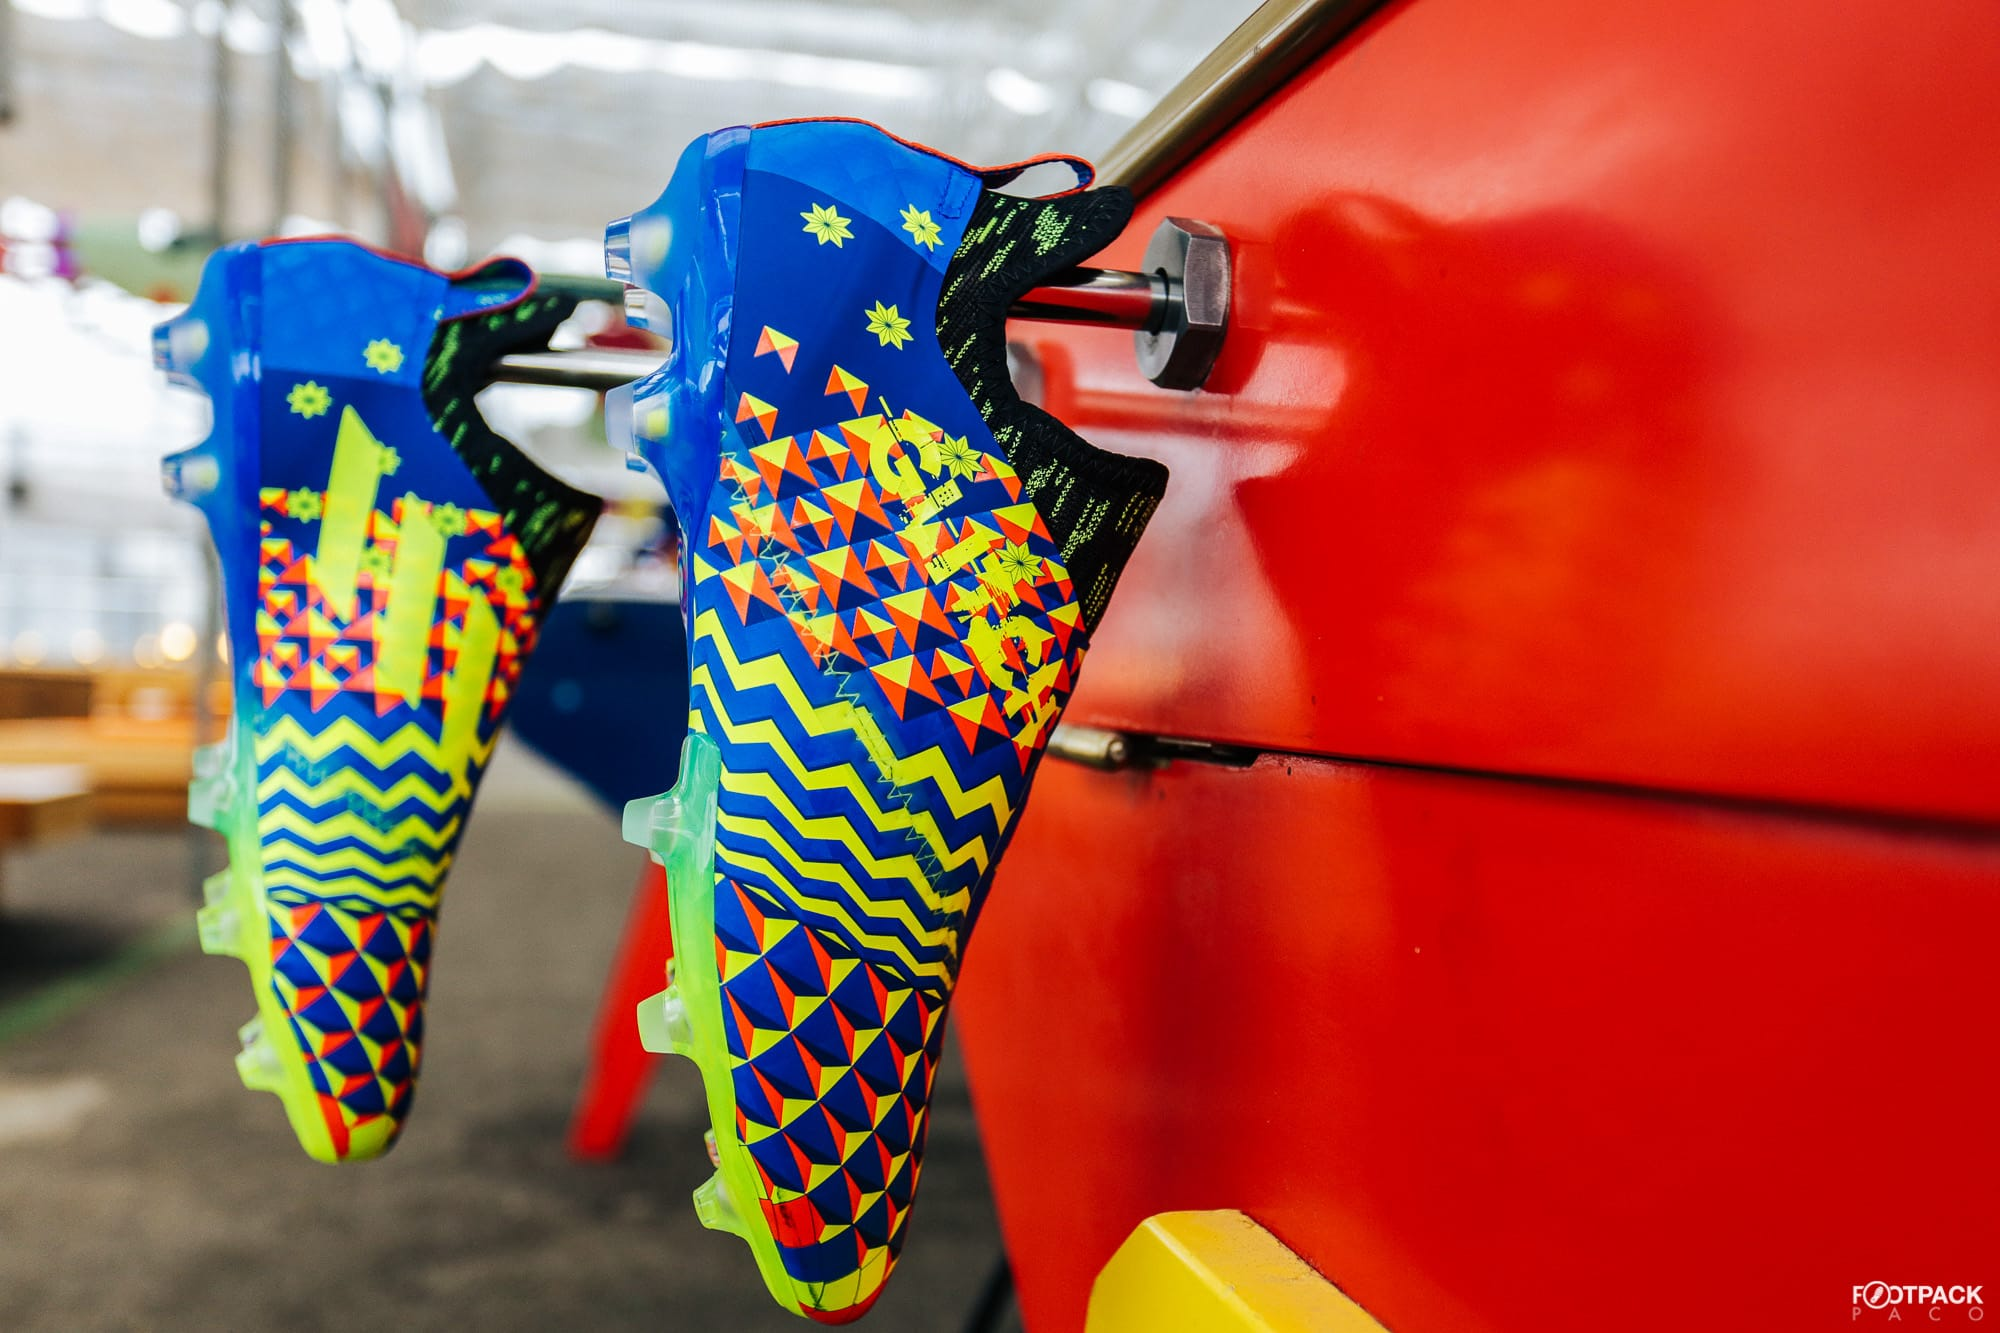 Chaussures-football-adidas-glitch-18-2-0-Worldskin-France-Coupe-Monde-Juin-2018-4